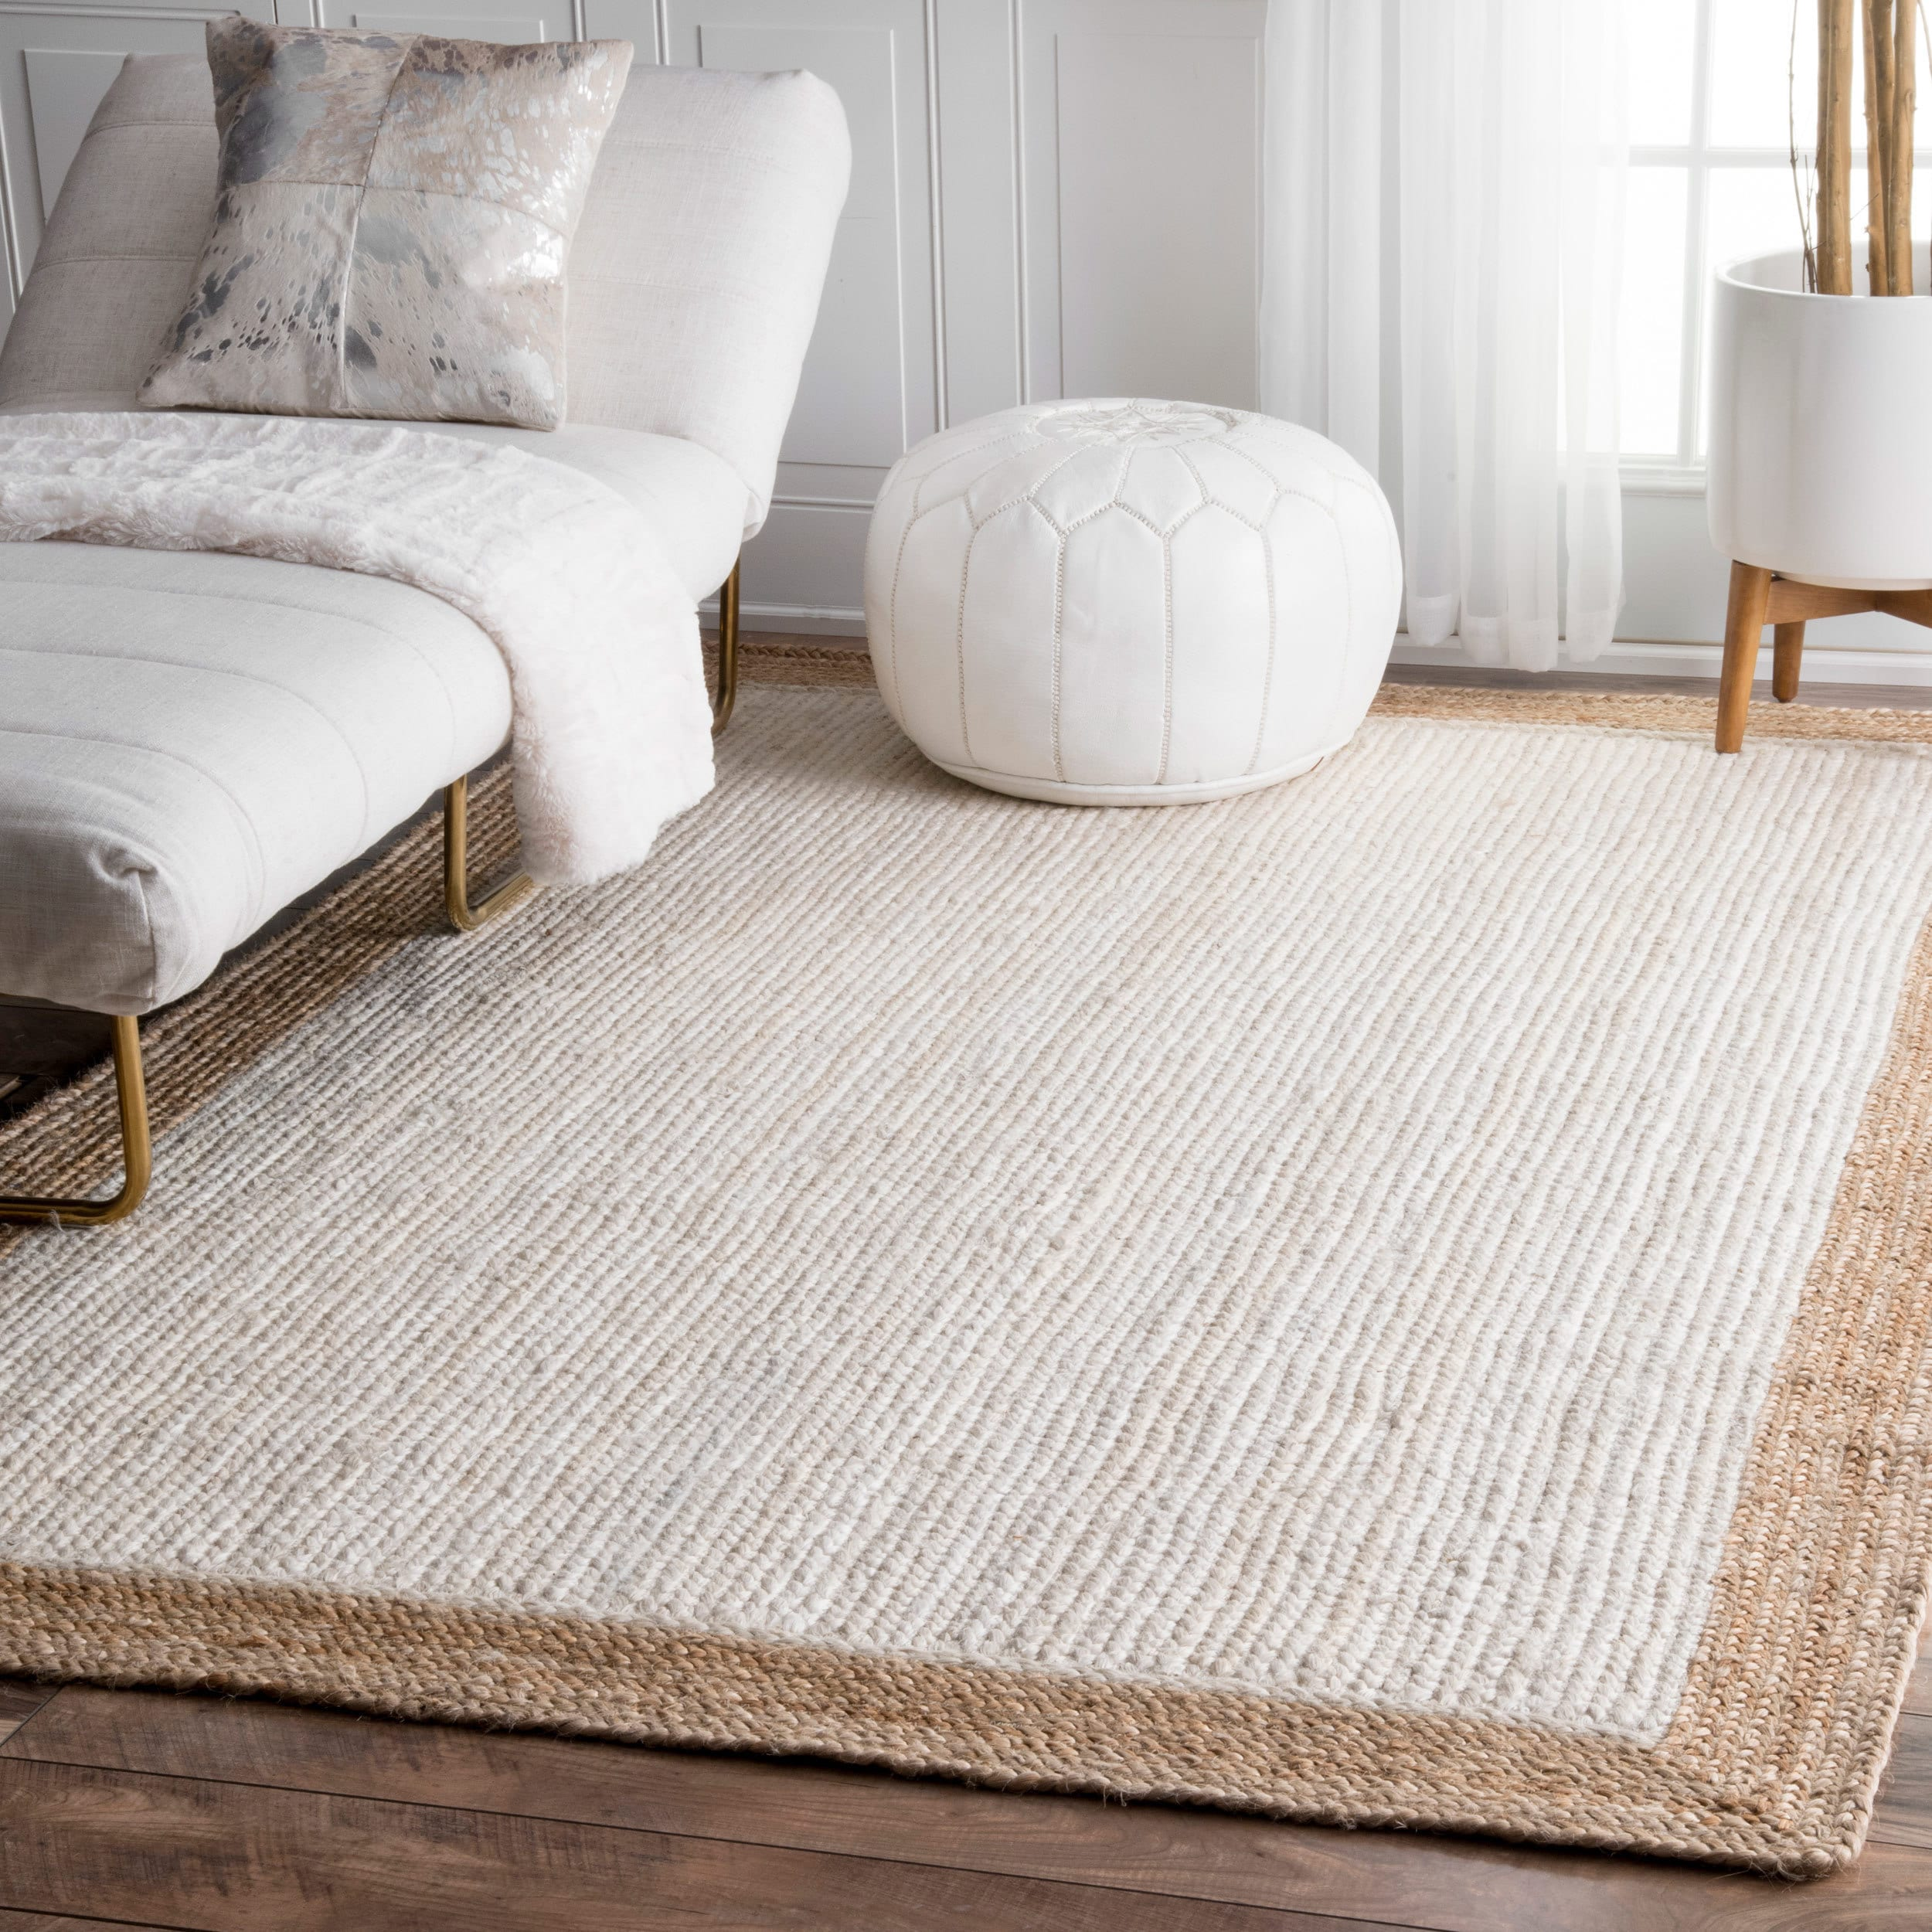 Shop The Gray Barn Cinch Buckle Braided Reversible White Jute Area ...